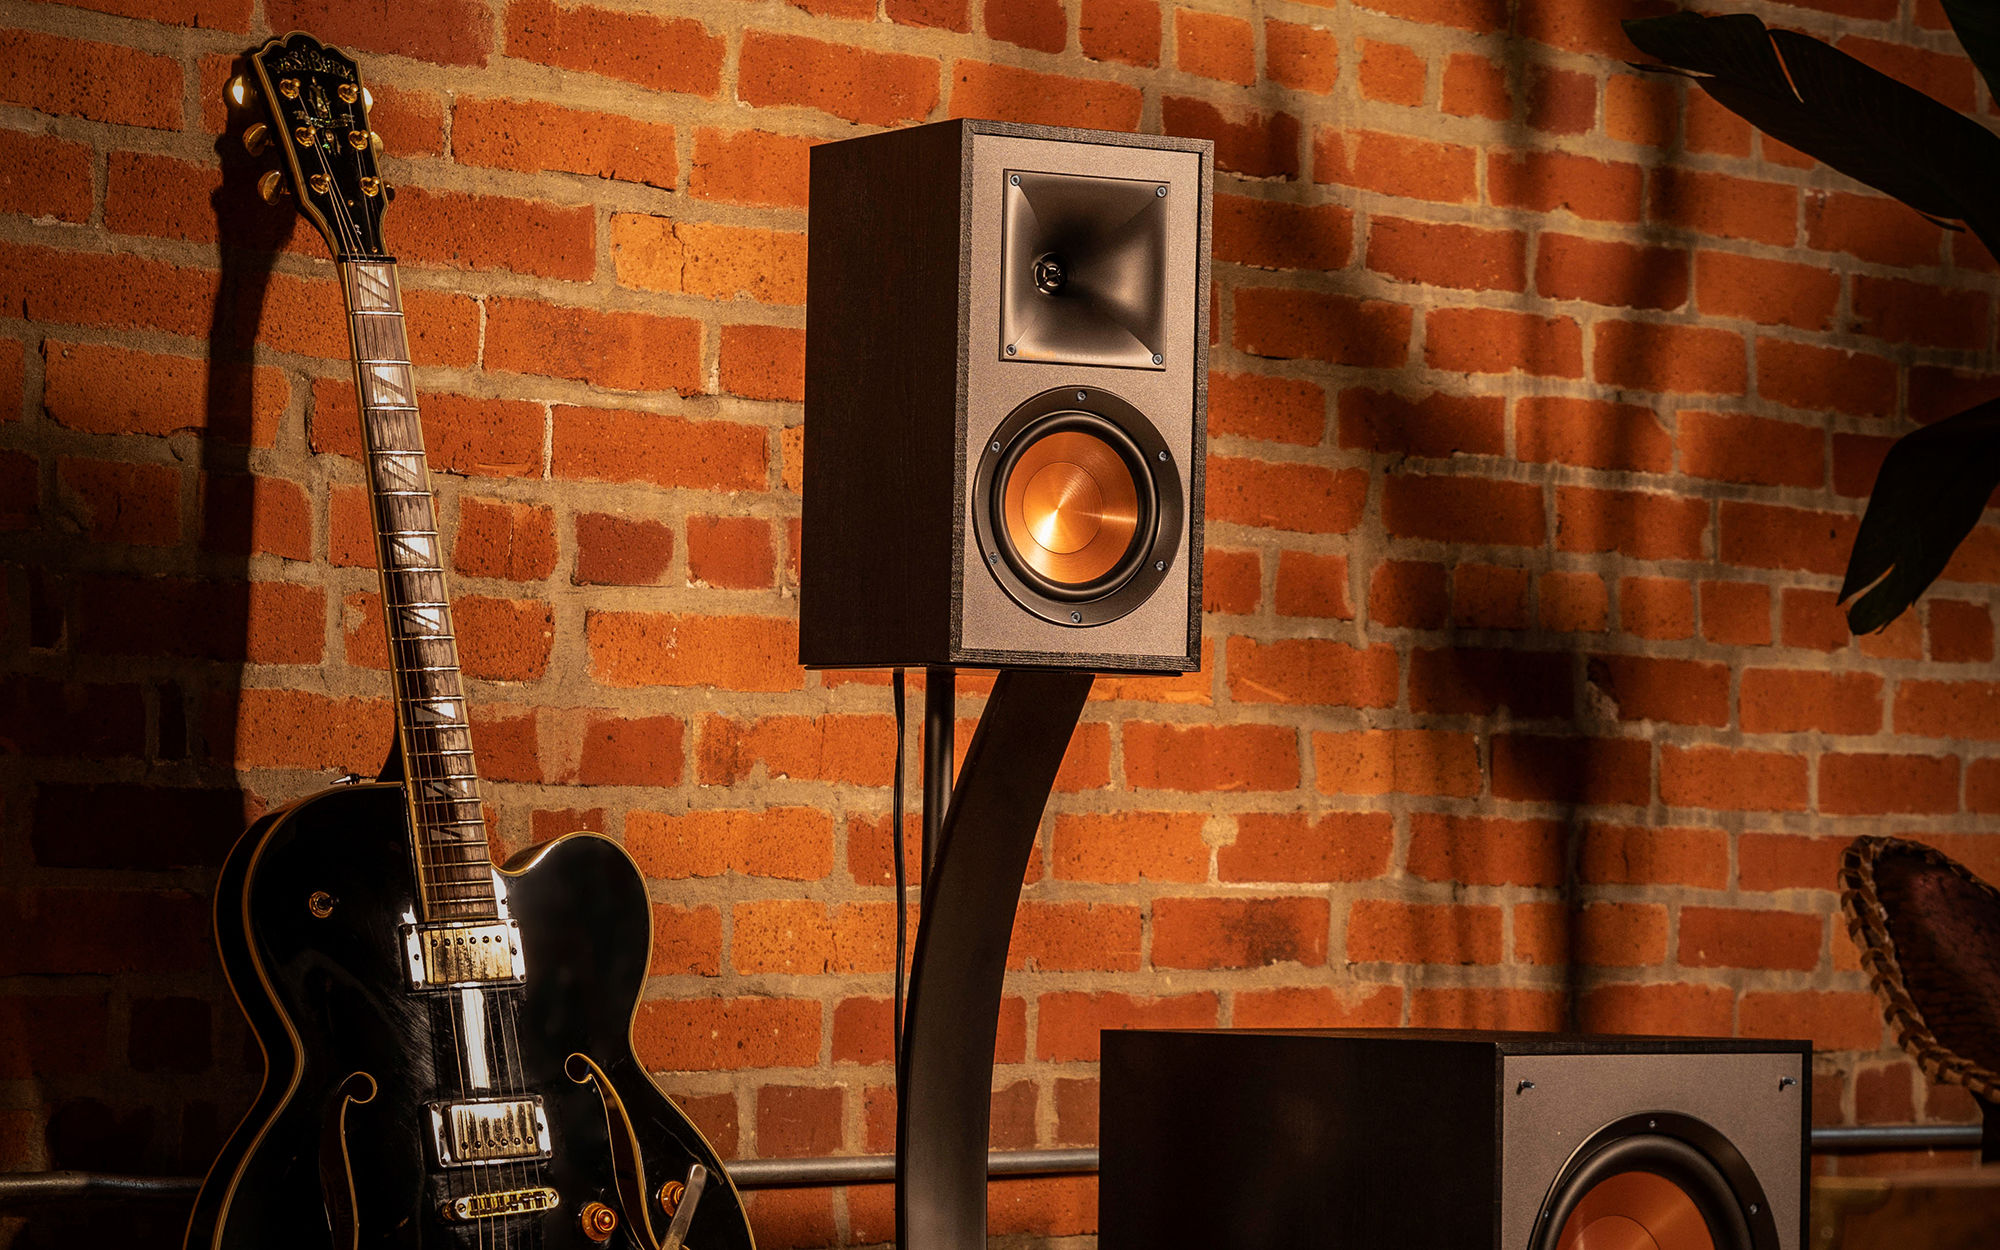 Klipsch R-51M bookshelf speaker and guitar